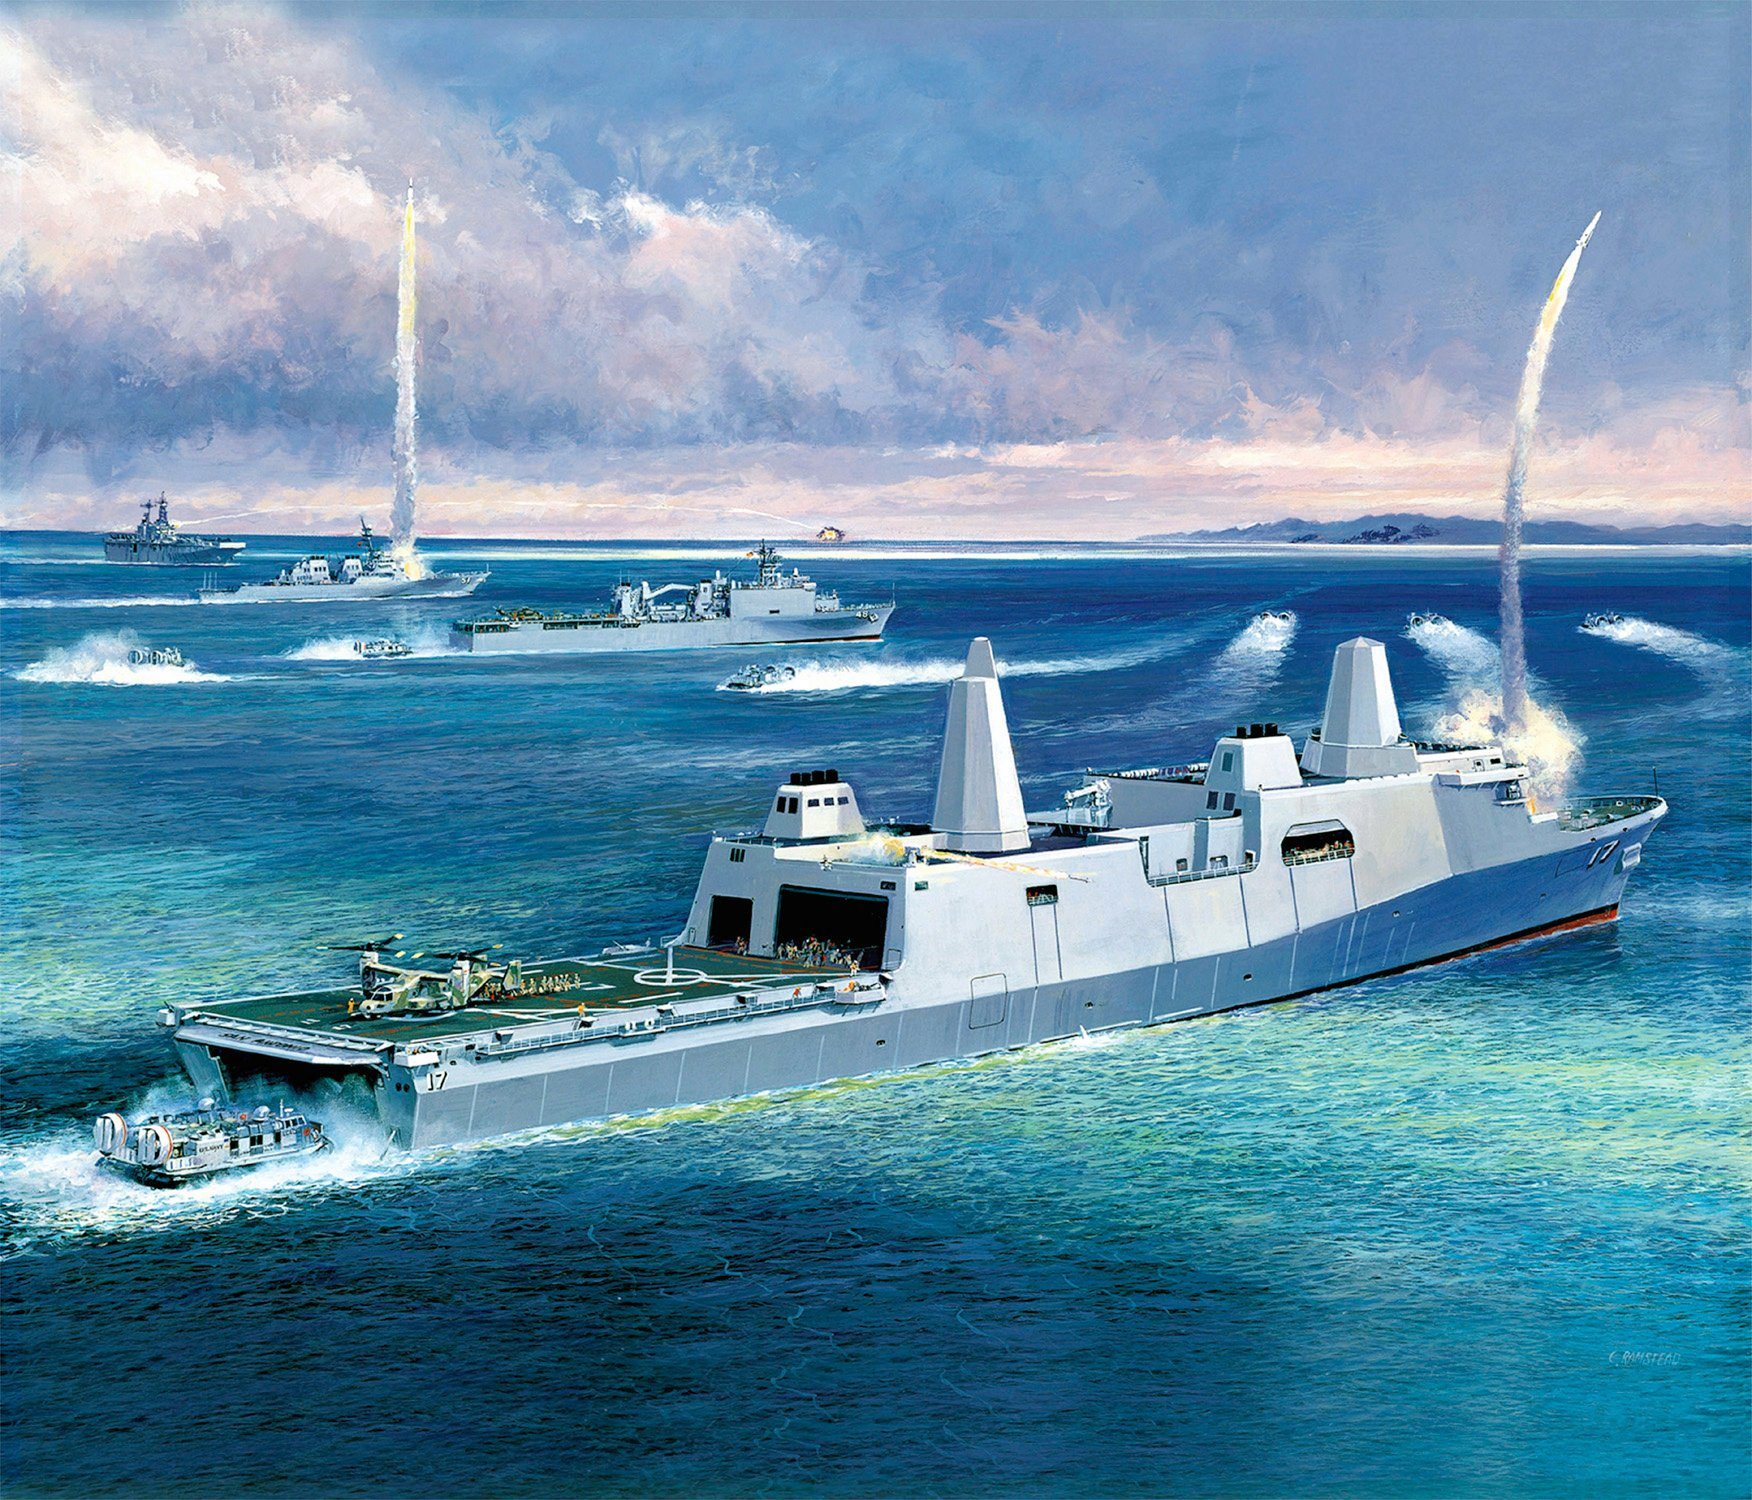 2003 Artist's concept of the San Antonio Class amphibious transport dock ships firing a missile from a vertical launch system in the ship's bow. US Navy Image